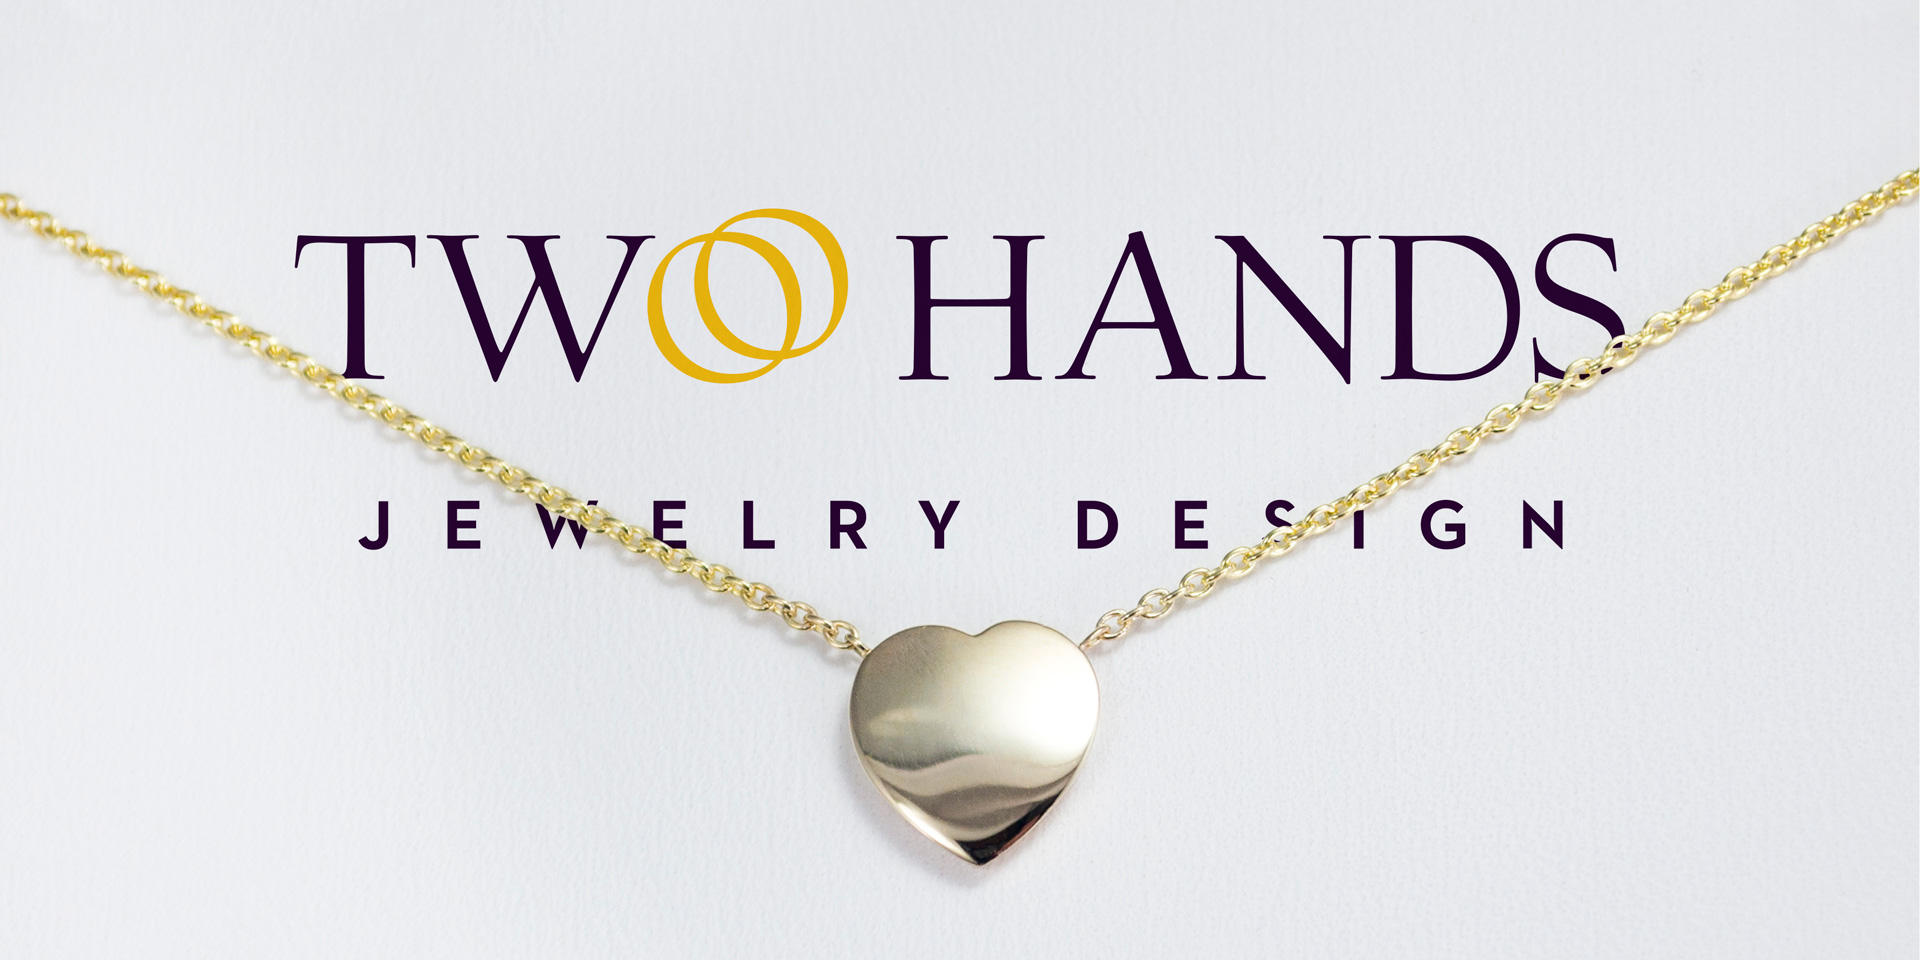 Two Hands Jewelry Design | Logo Banner | Jake Cooper Design